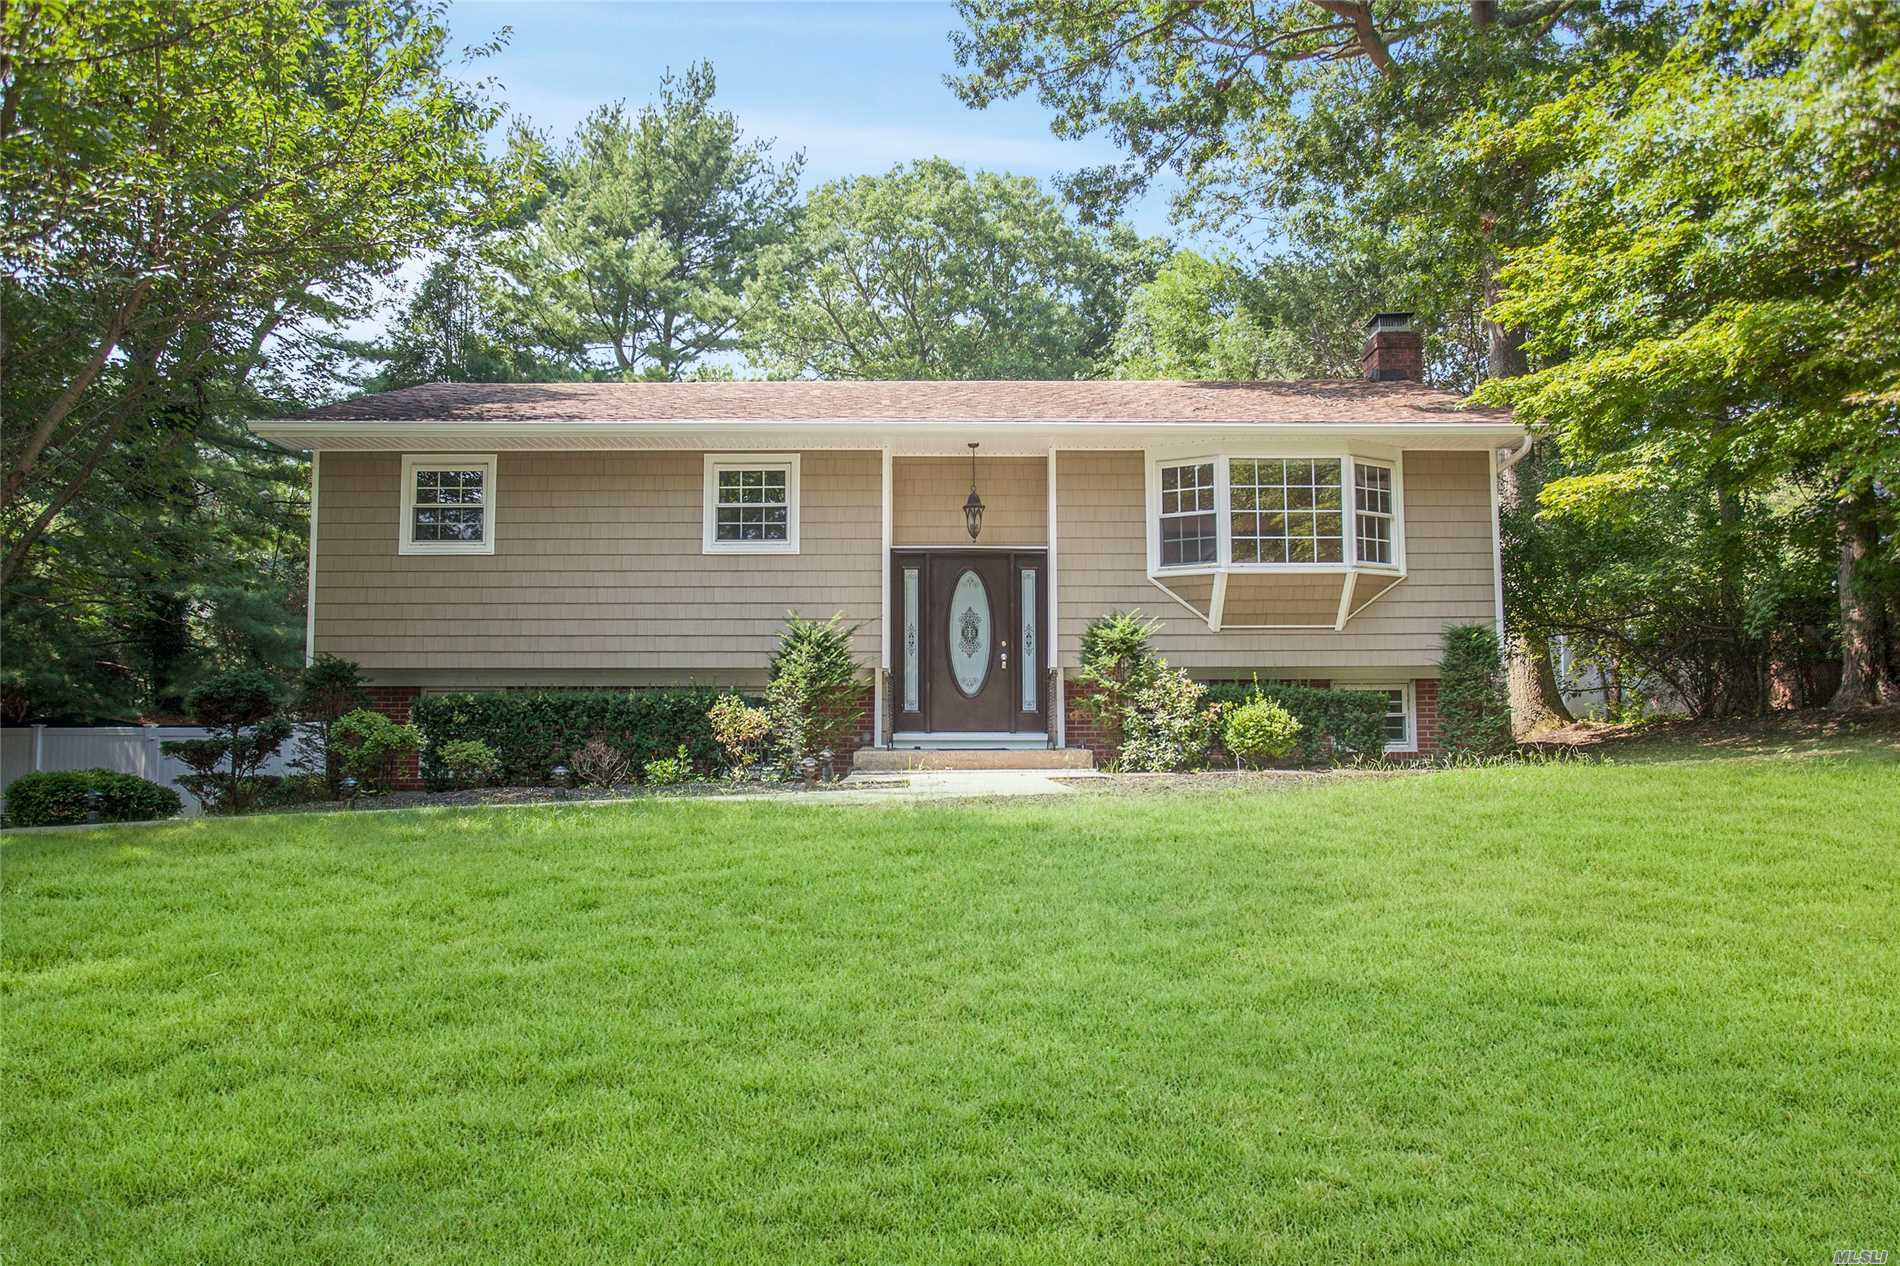 Best Value In Shoreham Estates! Newly Renovated Diamond Hi Ranch. Updates Include But Not Limited To: New Windows, Siding, Kitchen, Bathrooms And Deck. Gleaming Hardwood Floors Throughout. Open Layout & Low Taxes For Swr Schools!